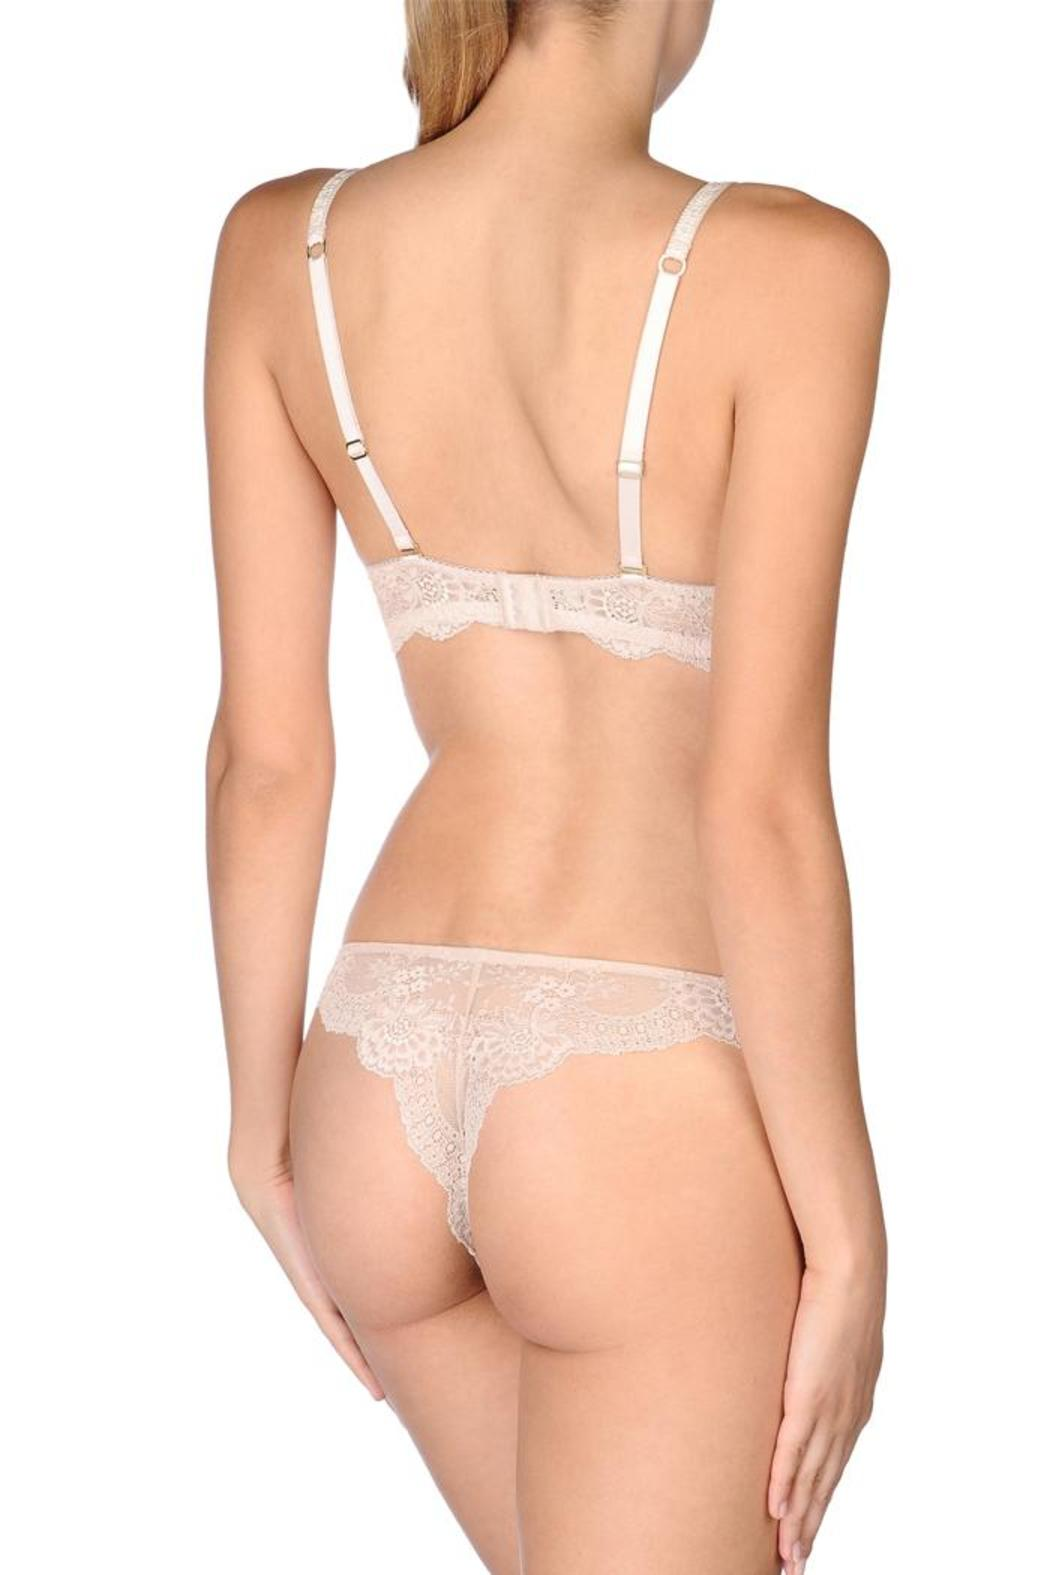 bb8255bb27 Stella McCartney Lingerie Smooth   Lace Strapless Bra - Side Cropped Image